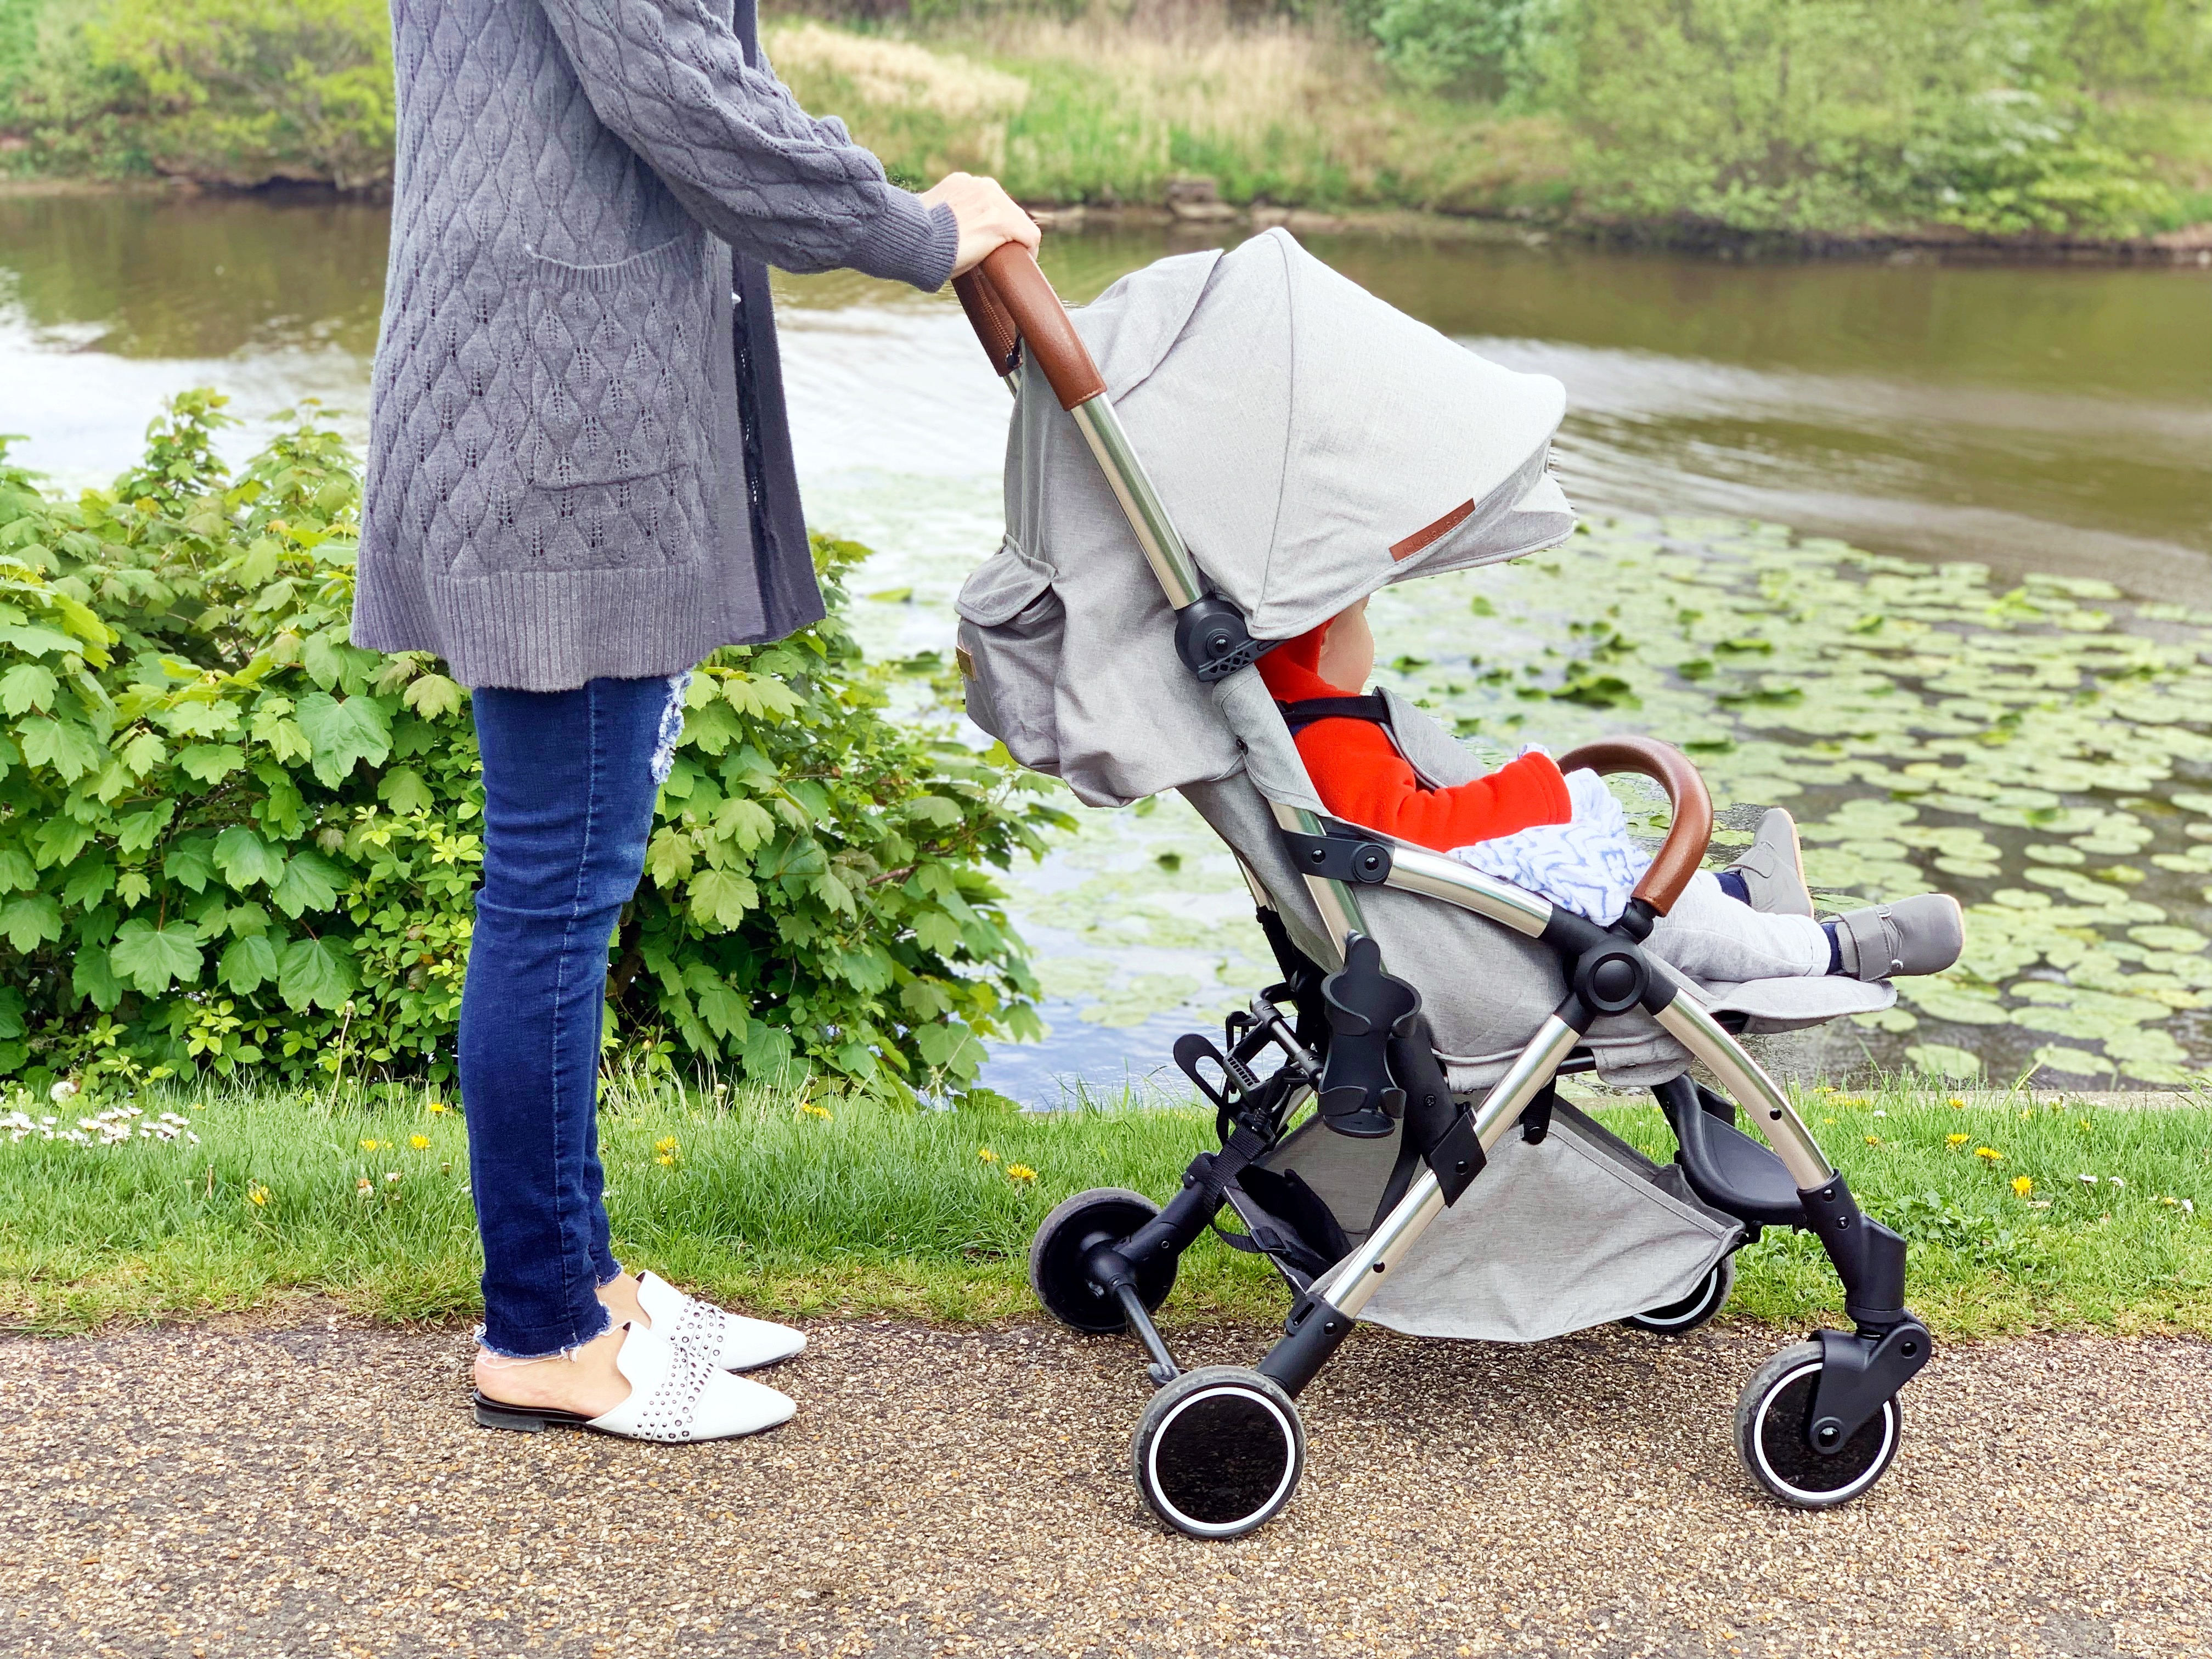 A woman pushing a grey pram next to a lake with a toddler sitting in it